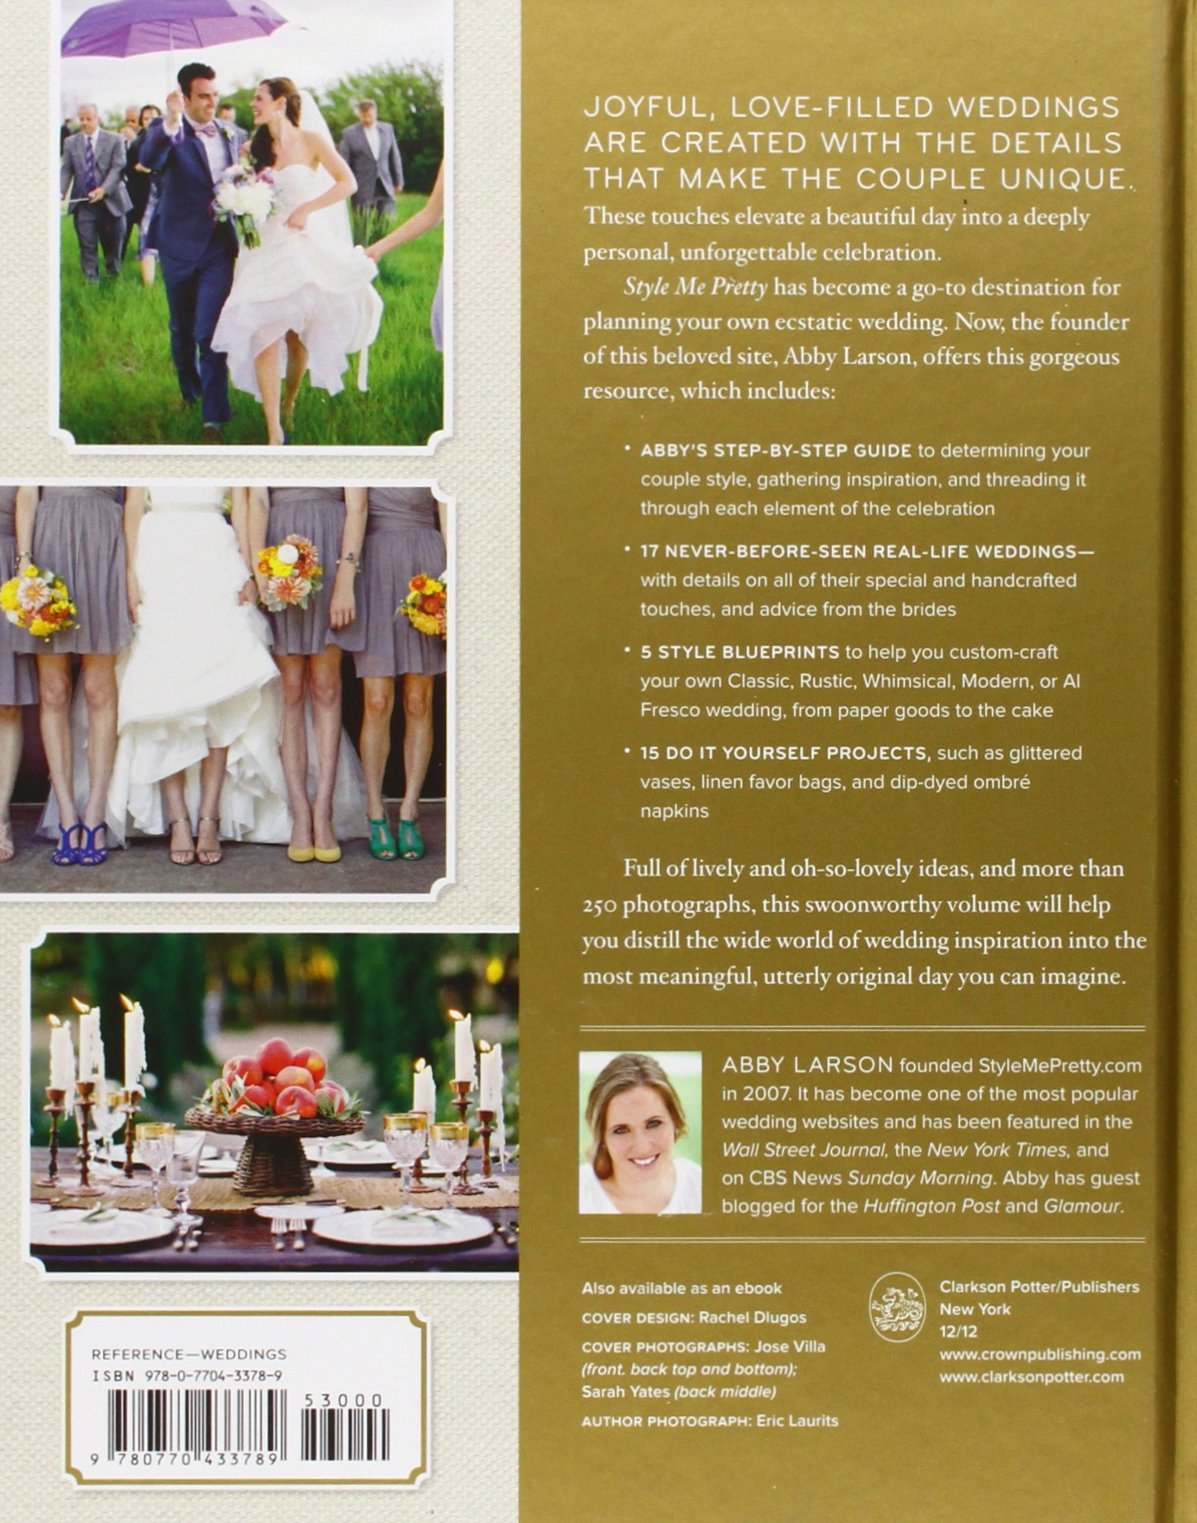 Style me pretty weddings inspiration and ideas for an unforgettable style me pretty weddings inspiration and ideas for an unforgettable celebration abby larson 9780770433789 amazon books fandeluxe Choice Image